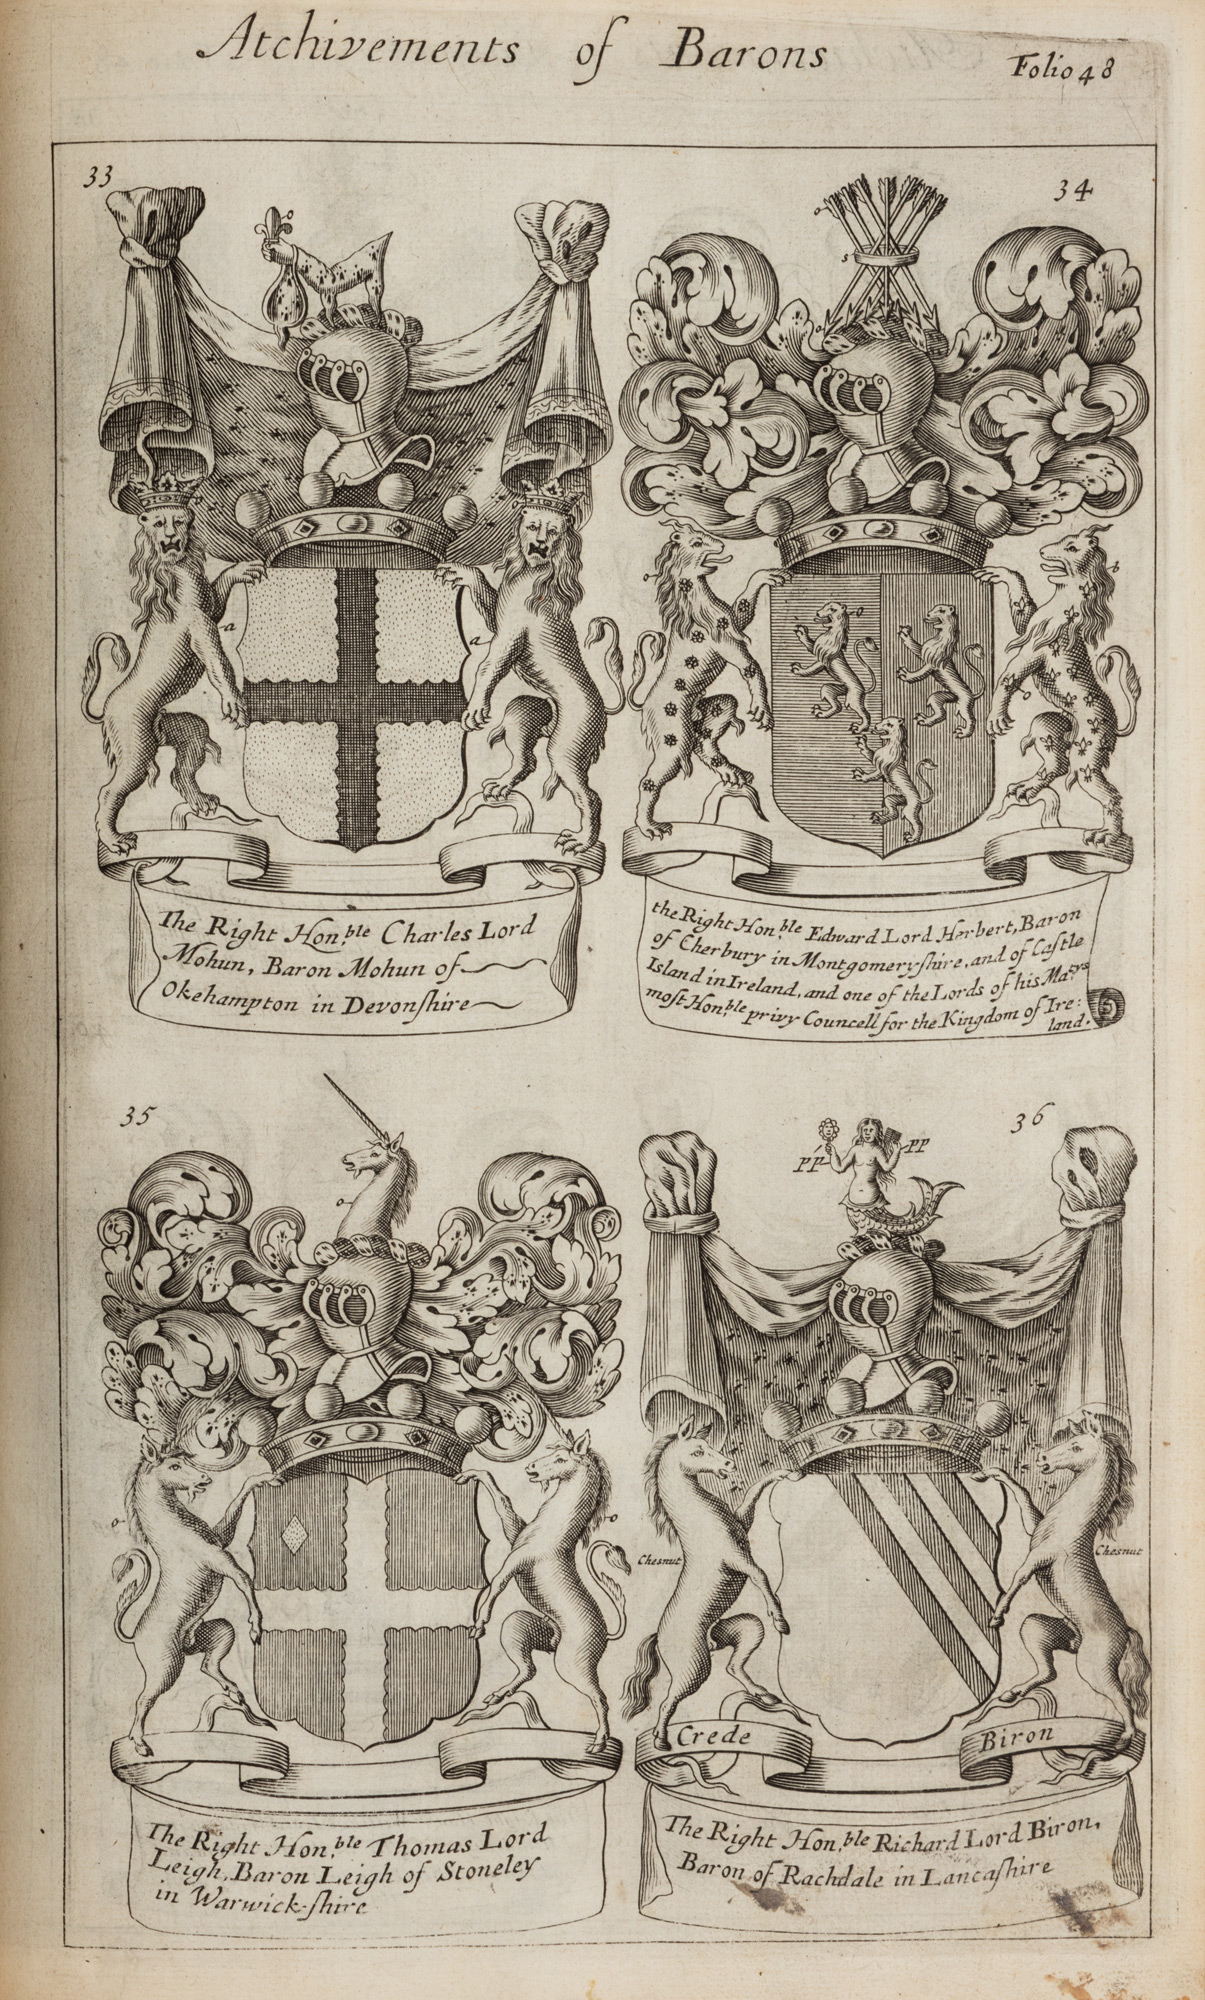 A Display of Heraldry, To which is added a Treatise of Honour Military and Civil. Analogia honorum or a treatise of honour and nobility…in two parts